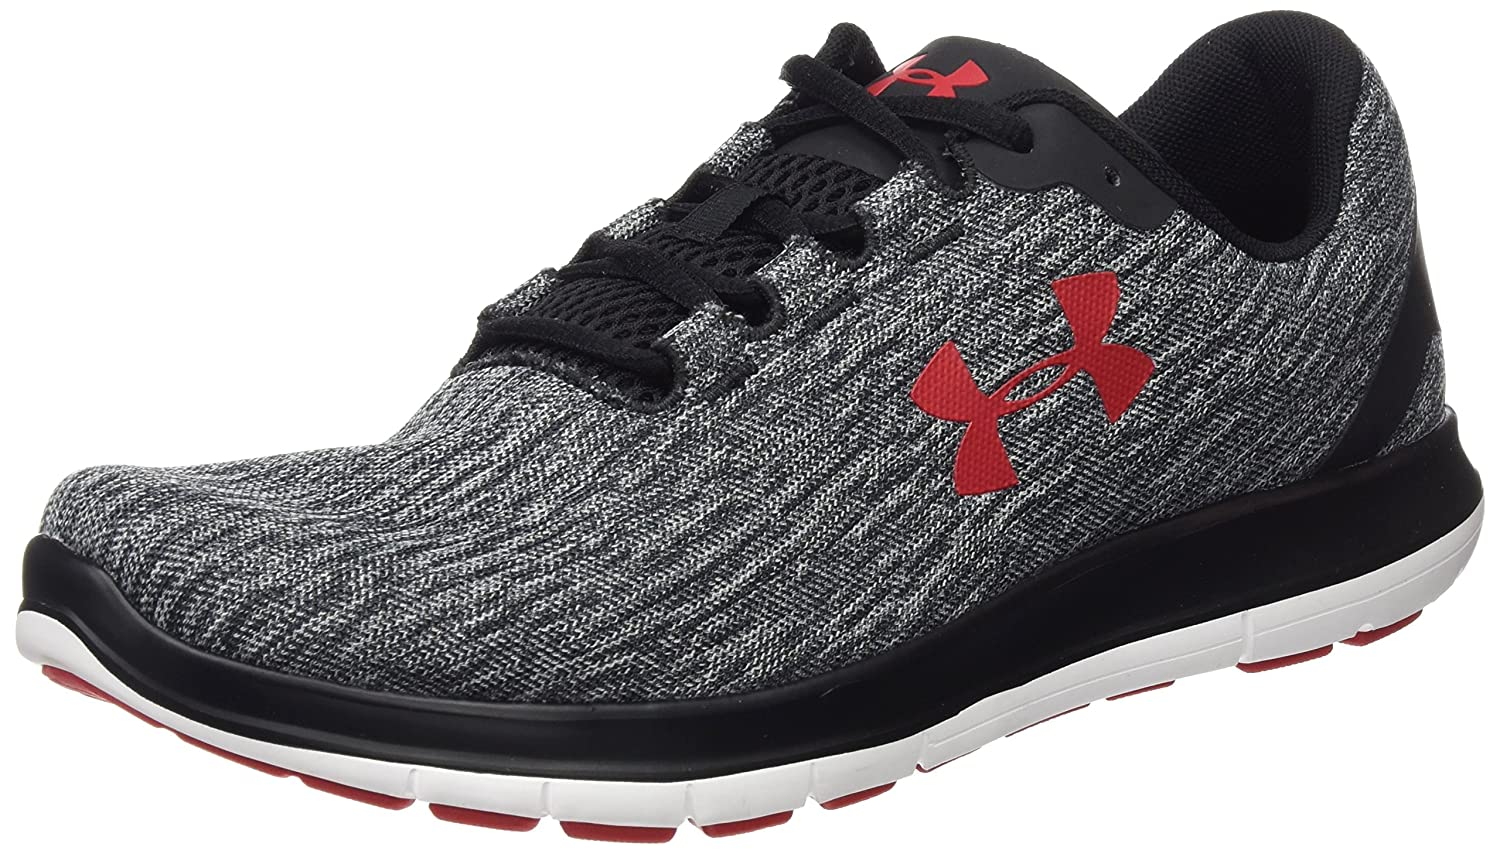 Under Armour Remix Running Shoes - SS18 B072LCQFGV 15 D(M) US|Grey